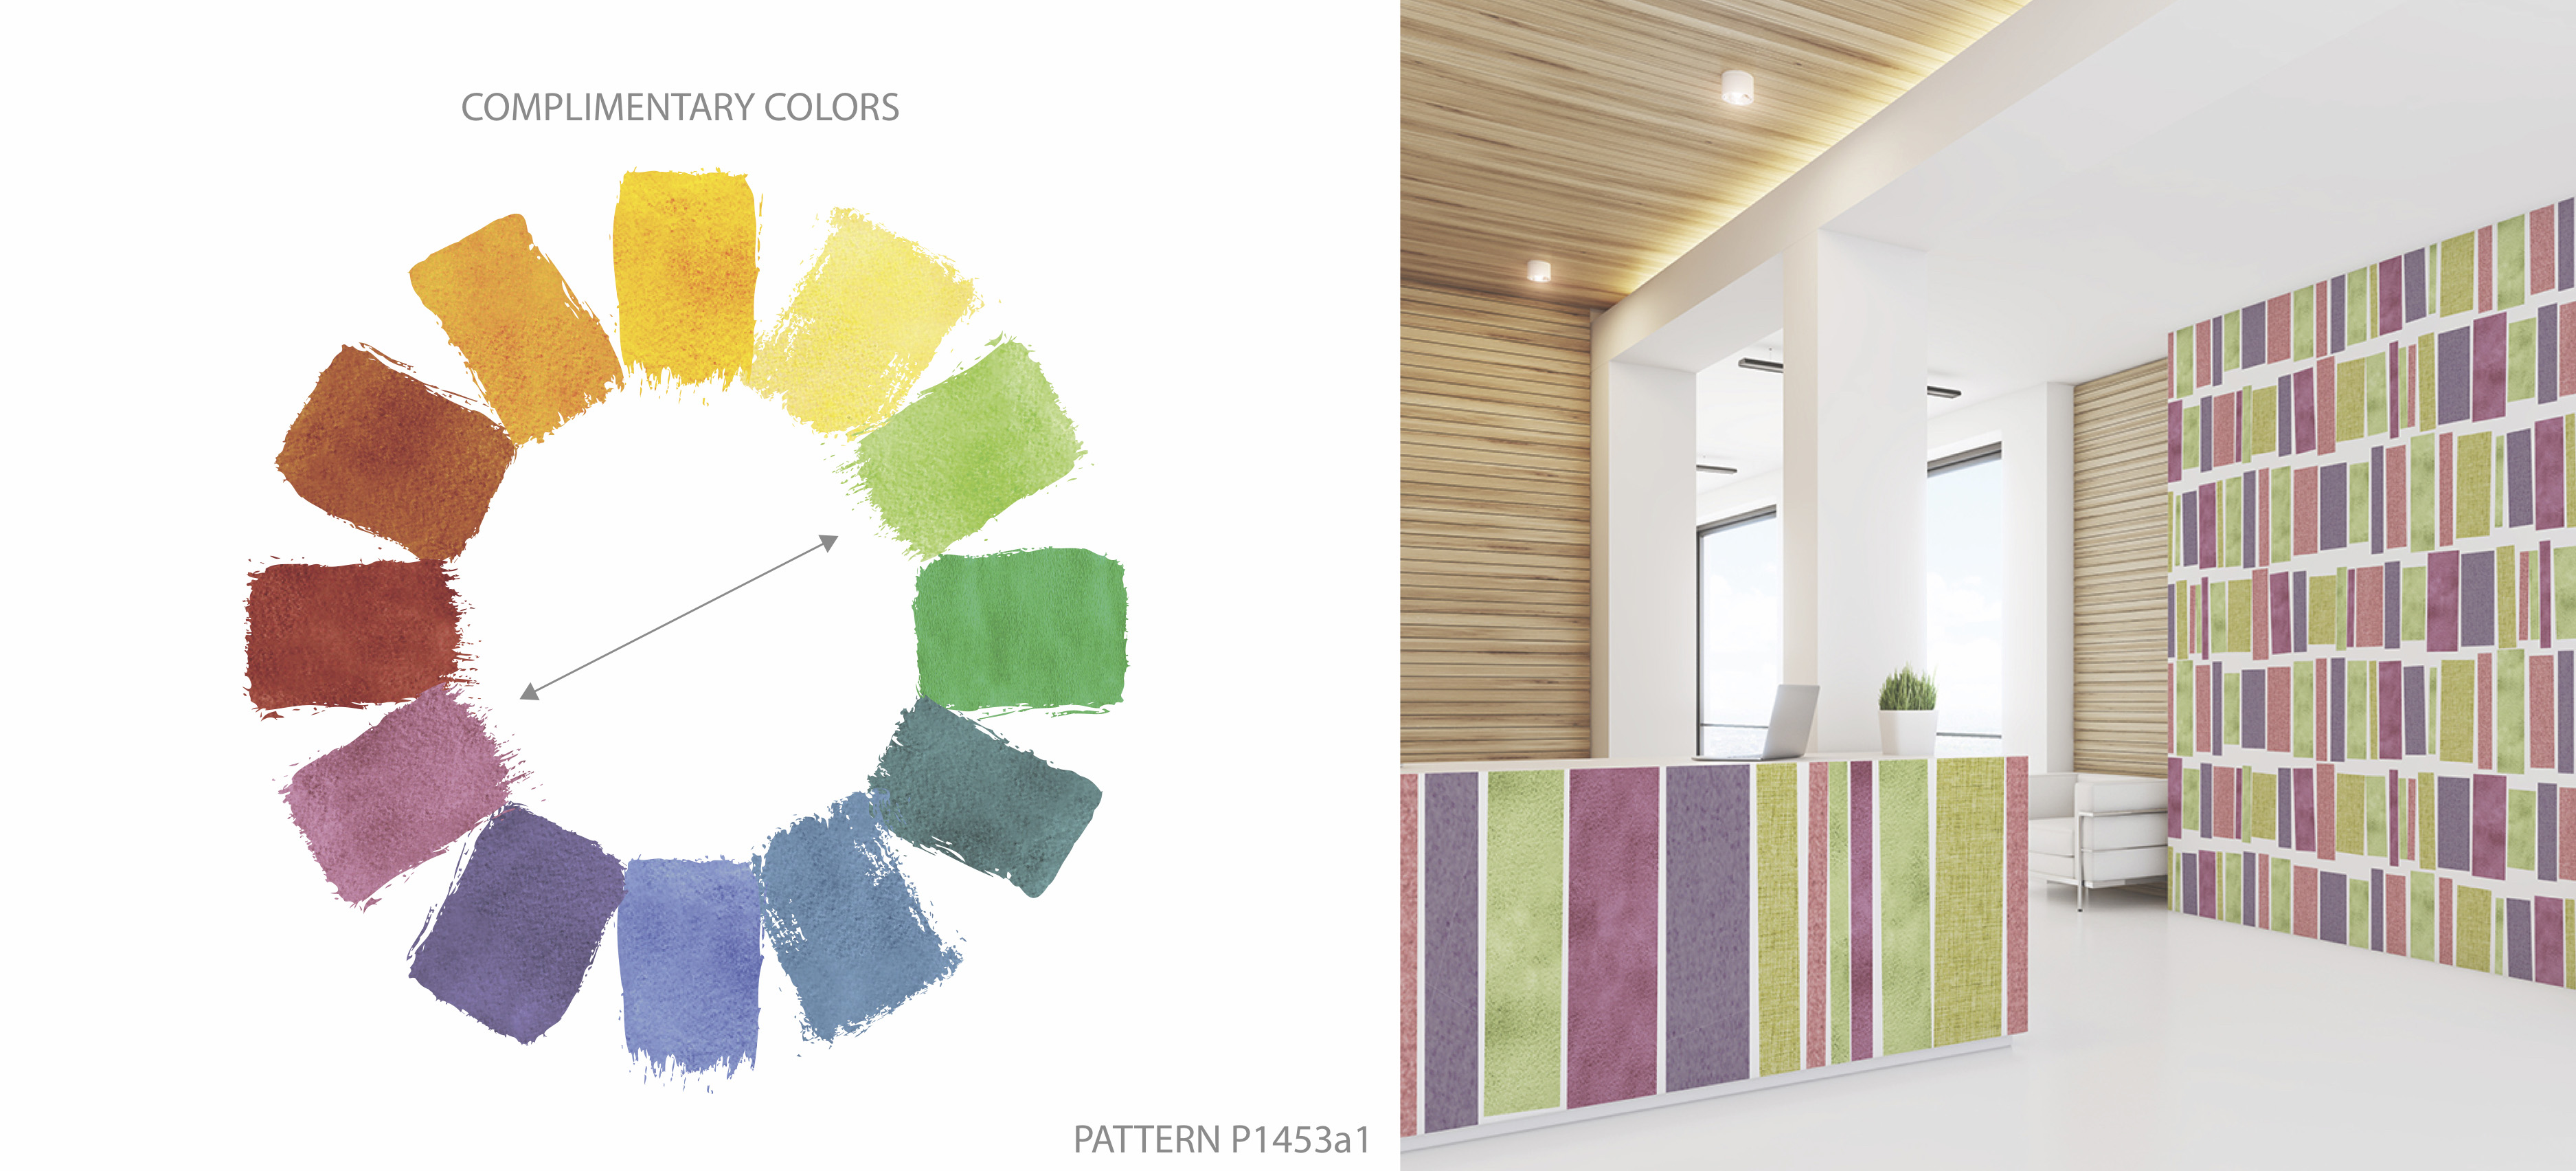 Color Wheel Complimentary Colors Pattern P1453 Deco Stripe